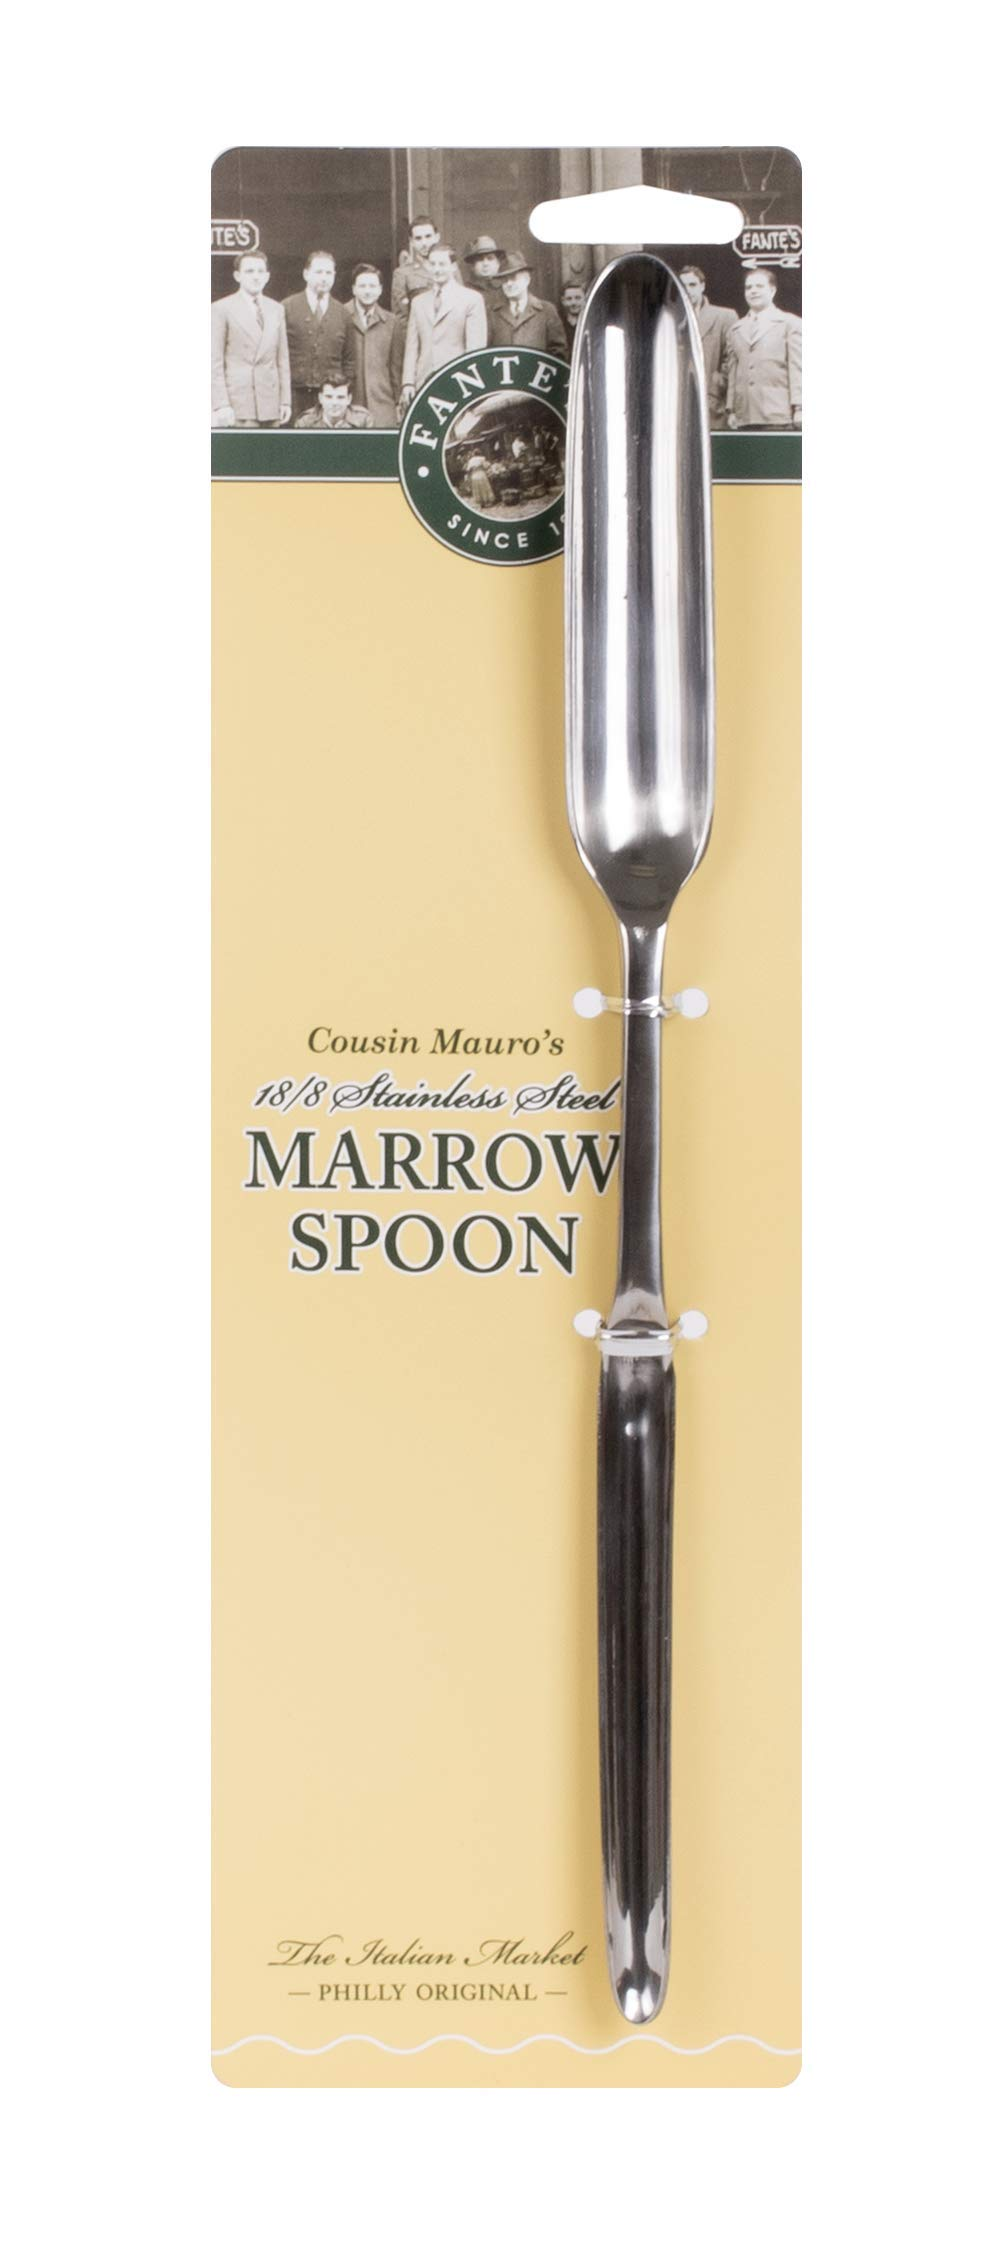 Fante's Dual-Sided Marrow Spoon, Ideal for Both Narrow and Big Bones, The Italian Market Original since 1906, 9.75 x 75-inches, Japanese 18/8 Stainless Steel